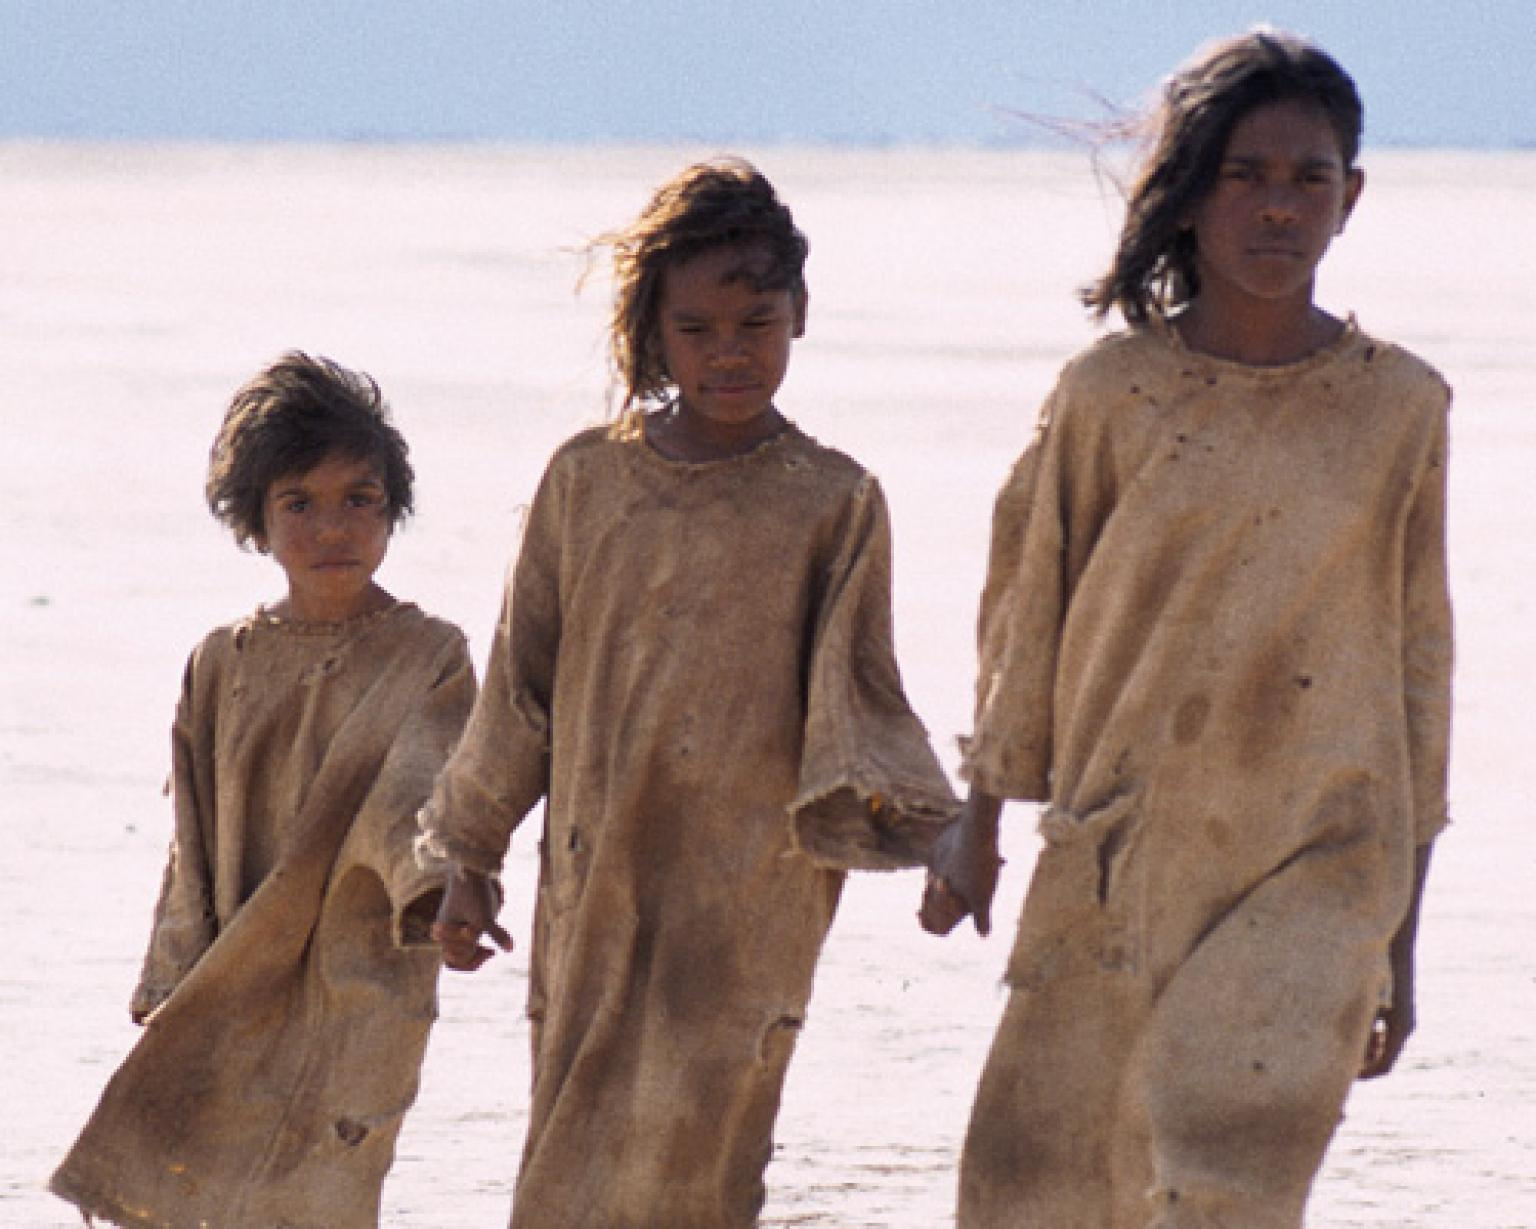 Tianna Sansbury as Daisy, Laura Monaghan as Gracie and Everlyn Sampi as Molly walking hand in hand across a salt flat.